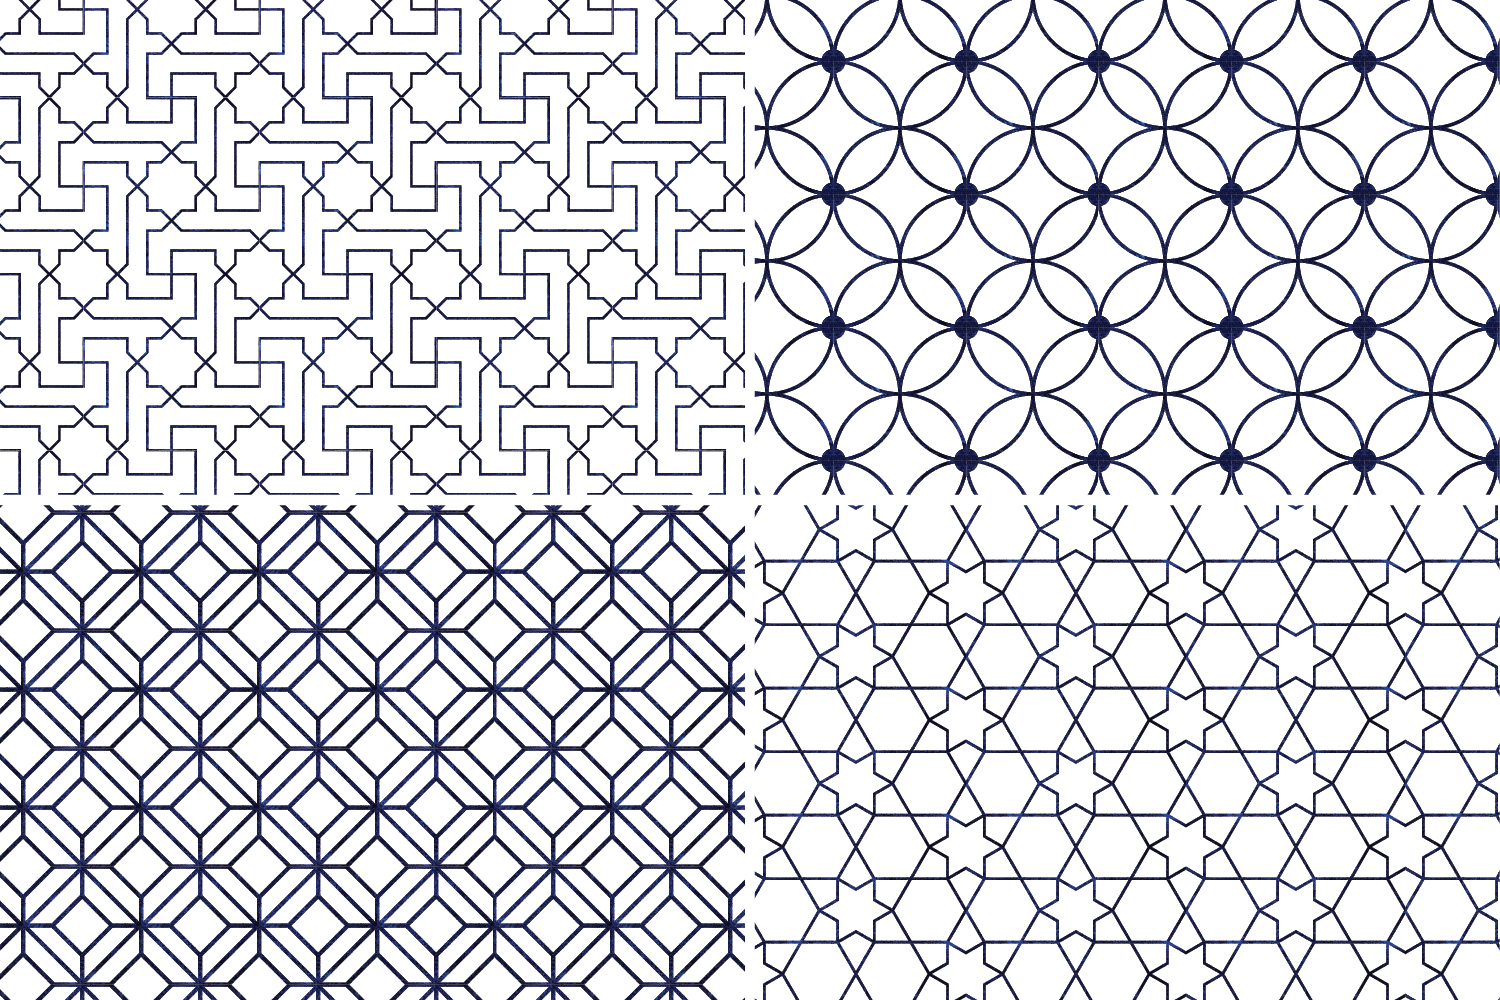 8 Seamless Moroccan Patterns - White & Blue Watercolor Set 3 example image 6